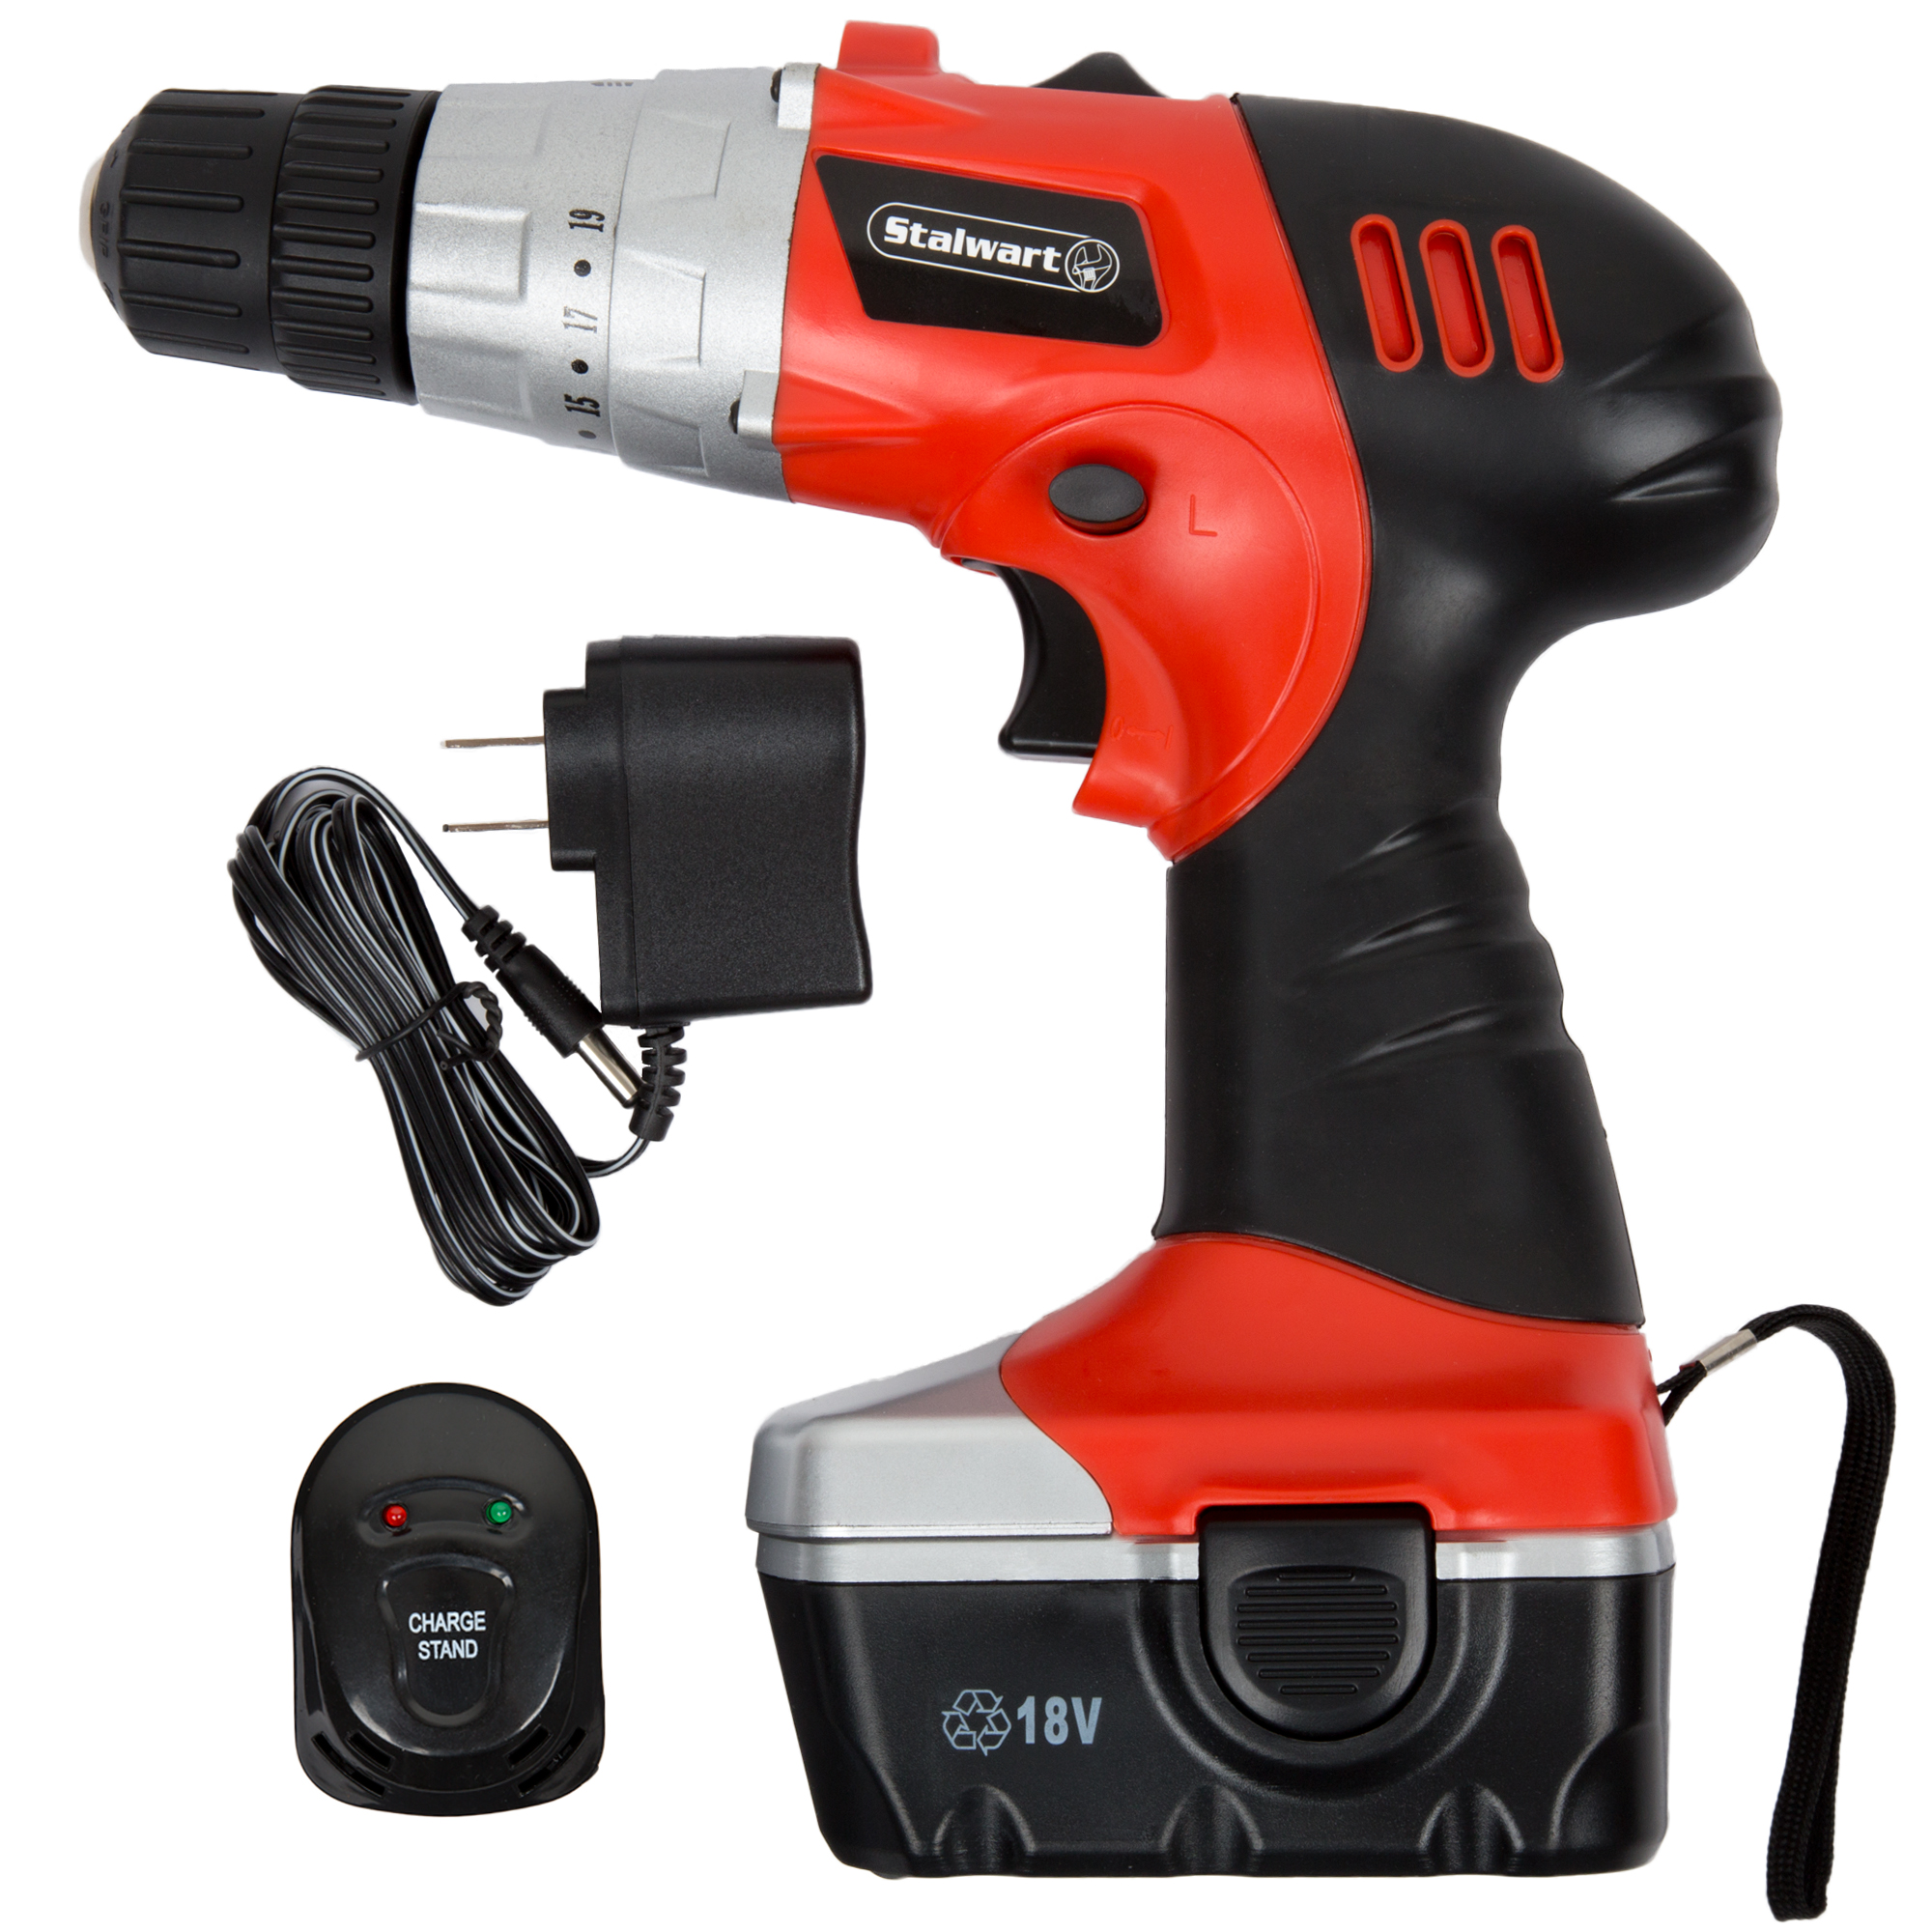 Stalwart W550004 18-Volt Ni-Cad Cordless Drill with LED Light